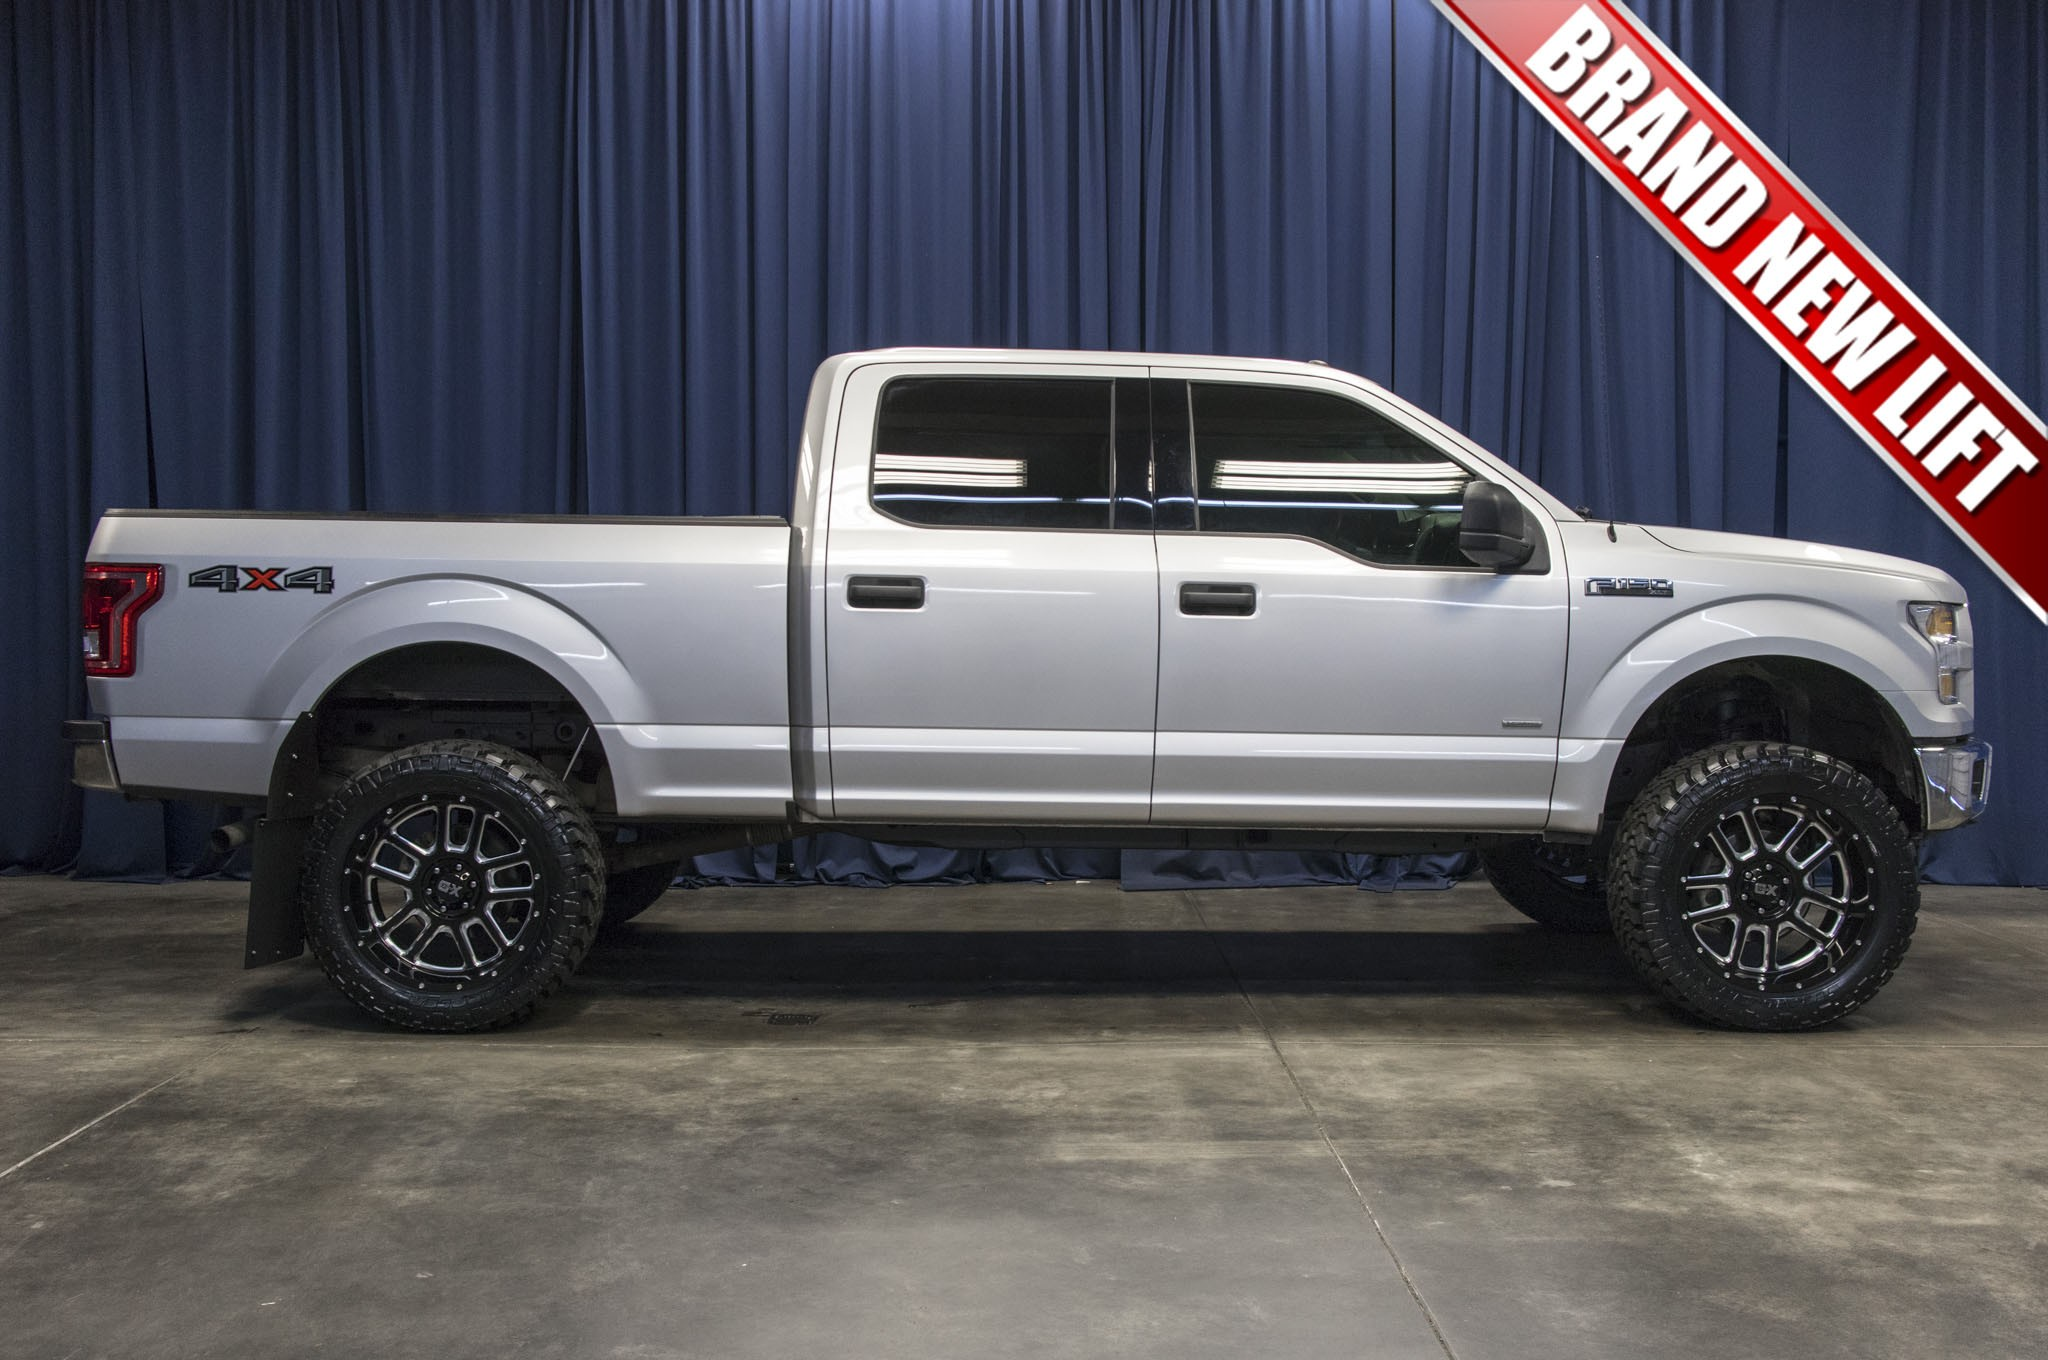 Used Lifted 2016 Ford F-150 XLT Ecoboost 4x4 Truck For ...